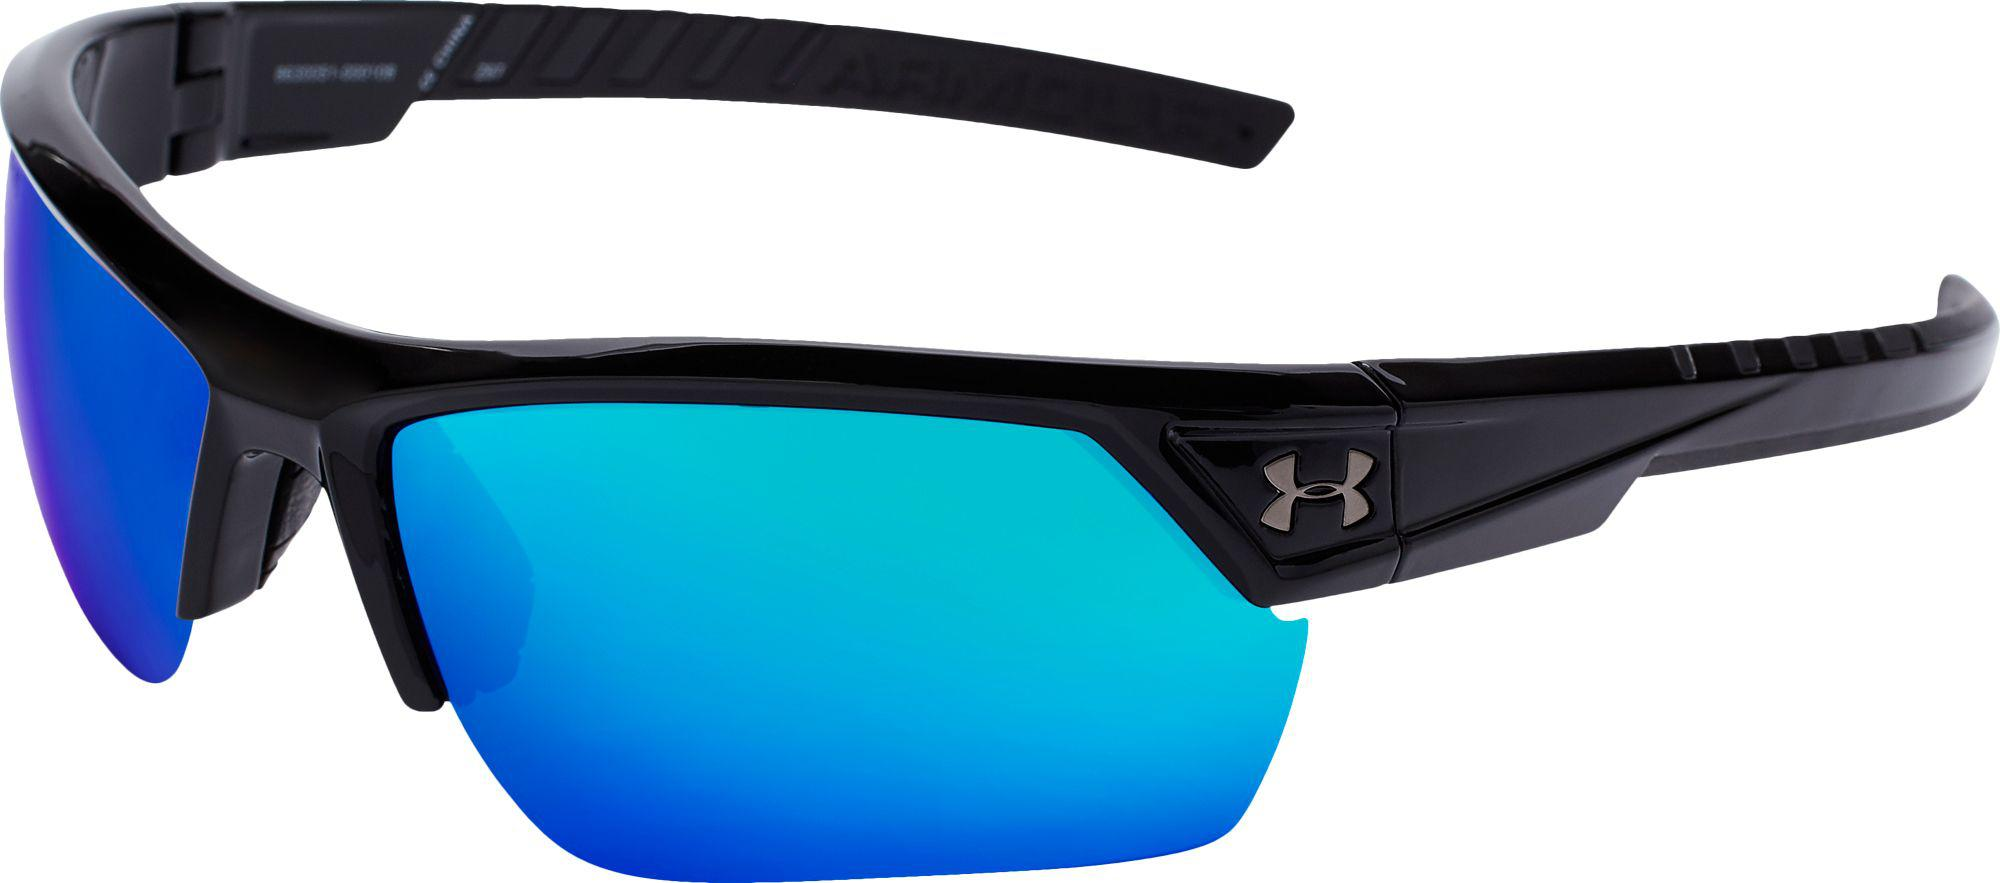 d706d0ab65c49 Under Armour - Black Igniter 2.0 Storm Polarized Sunglasses for Men - Lyst